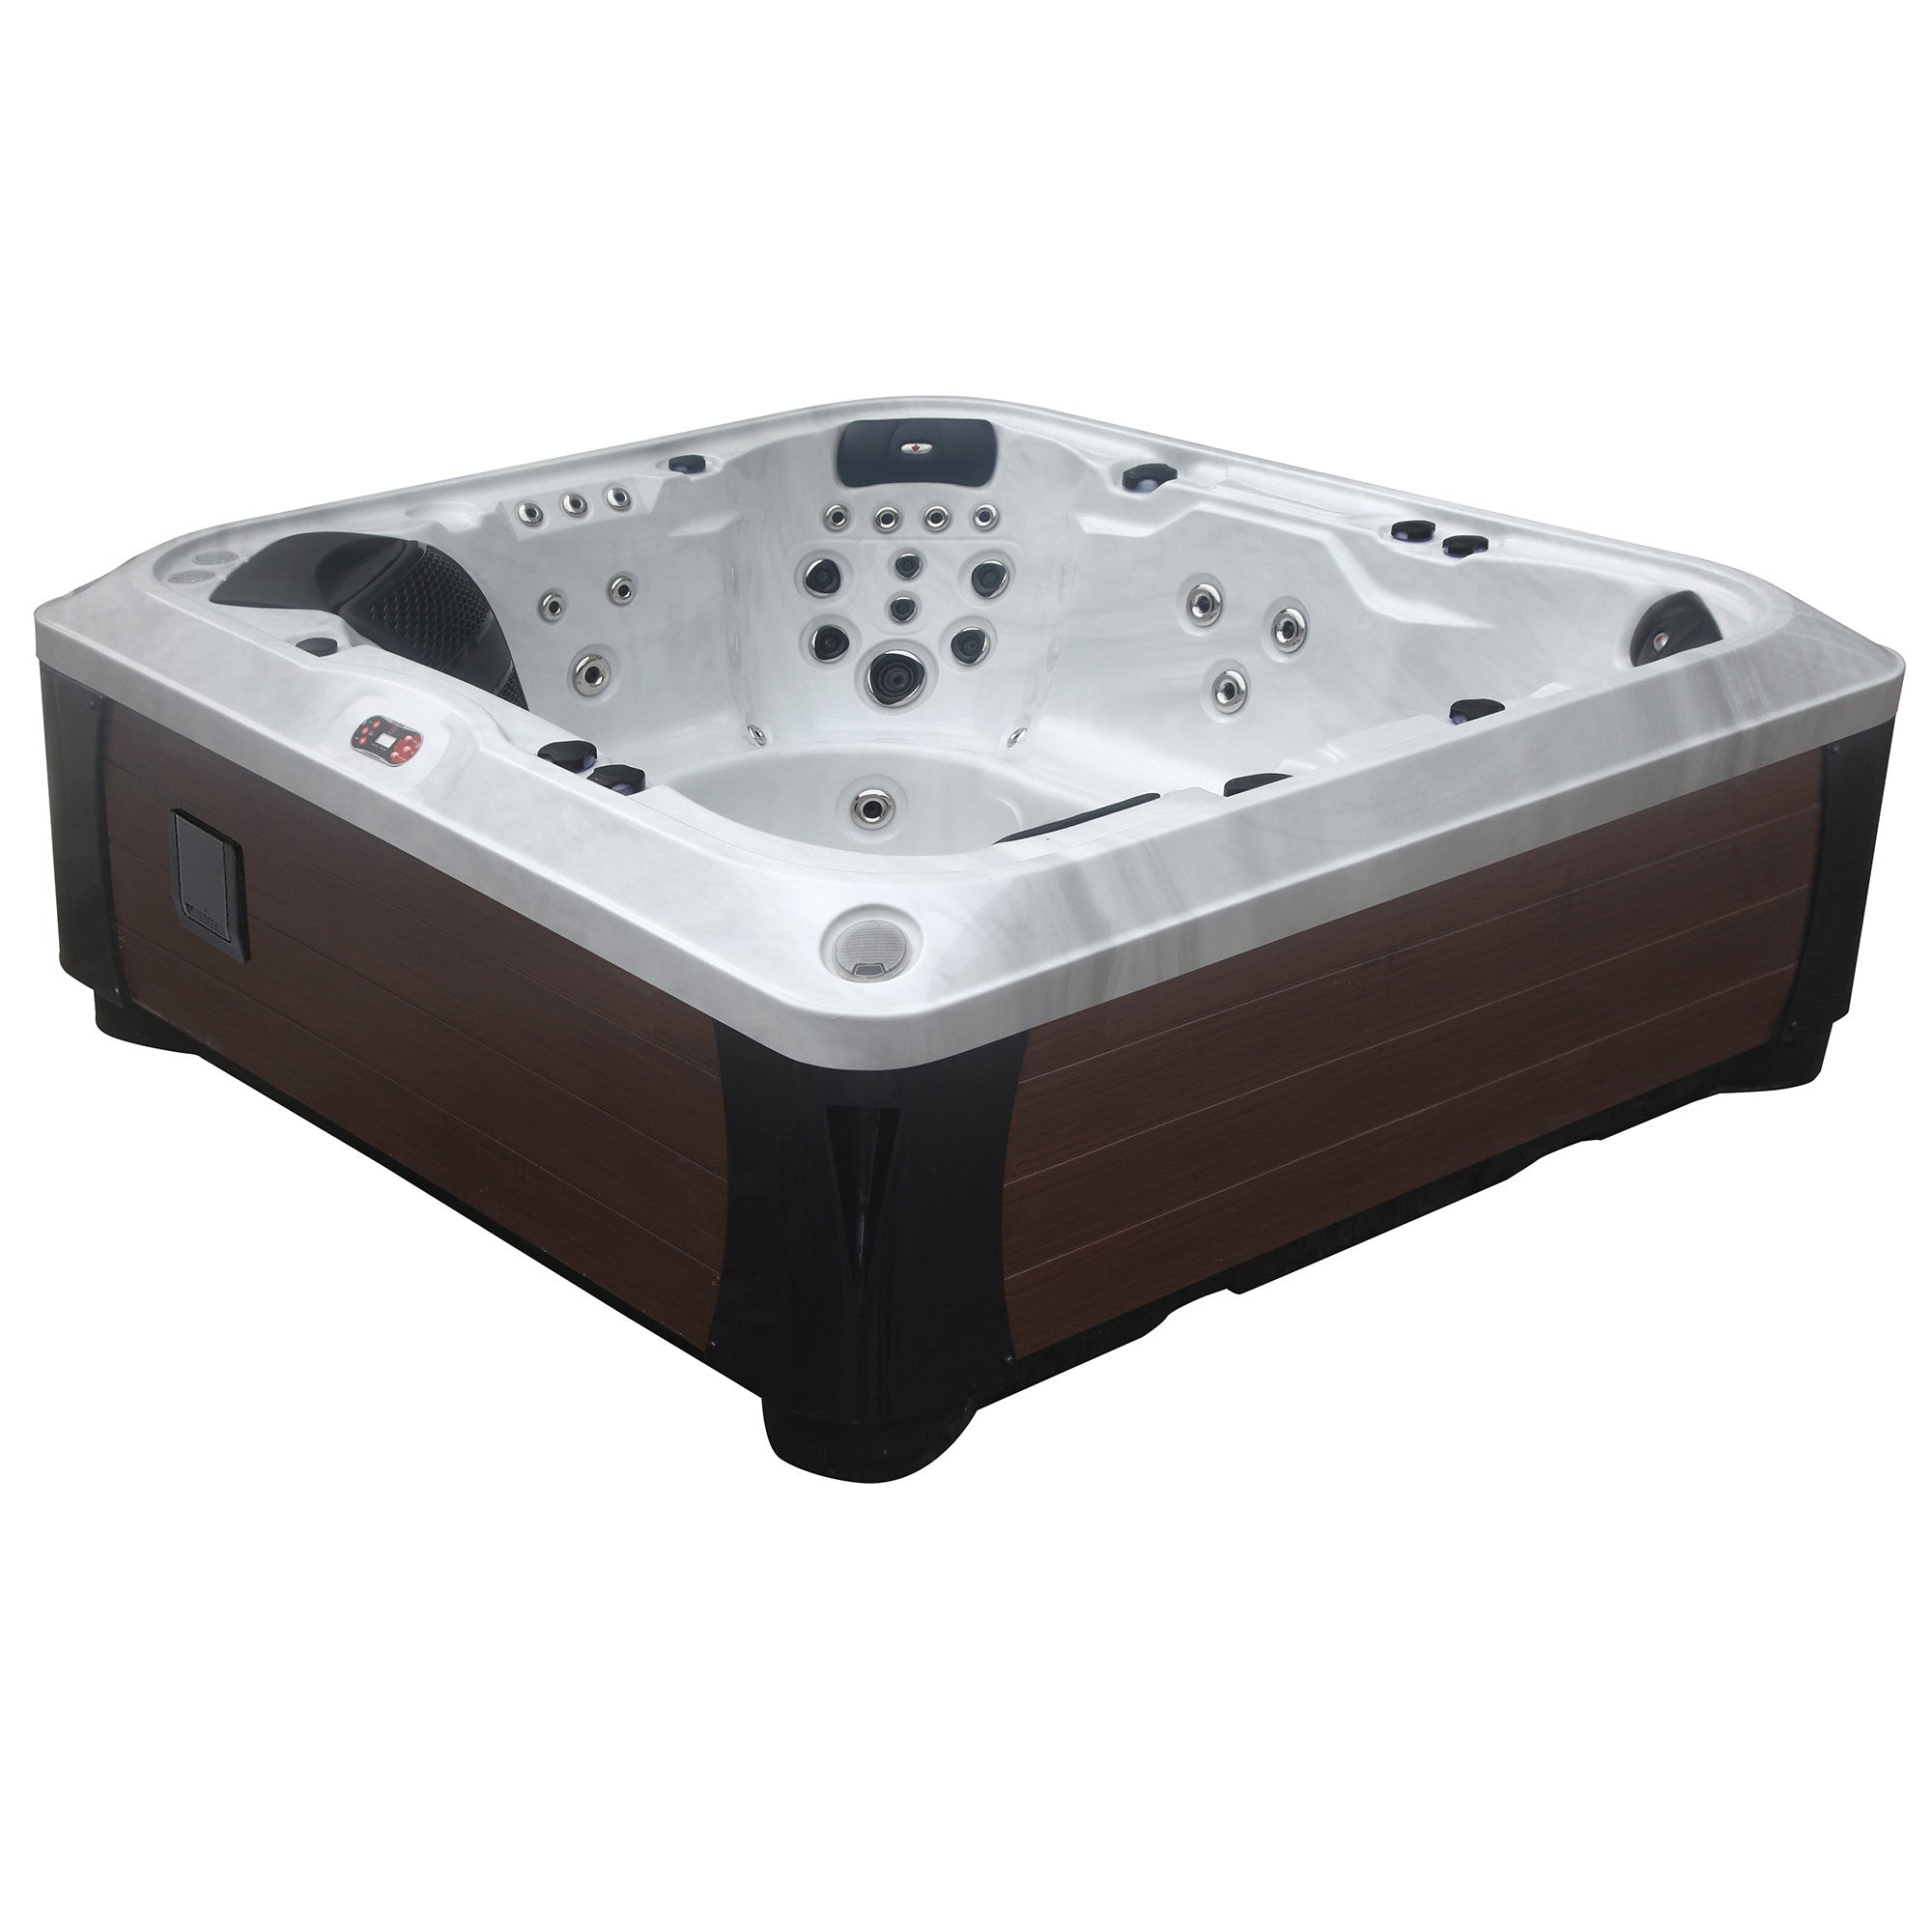 with dp system spa com person sanitization hot streamer bluetooth tub ozone waterfall stereo lounger led amazon outdoor spas jet am garden american